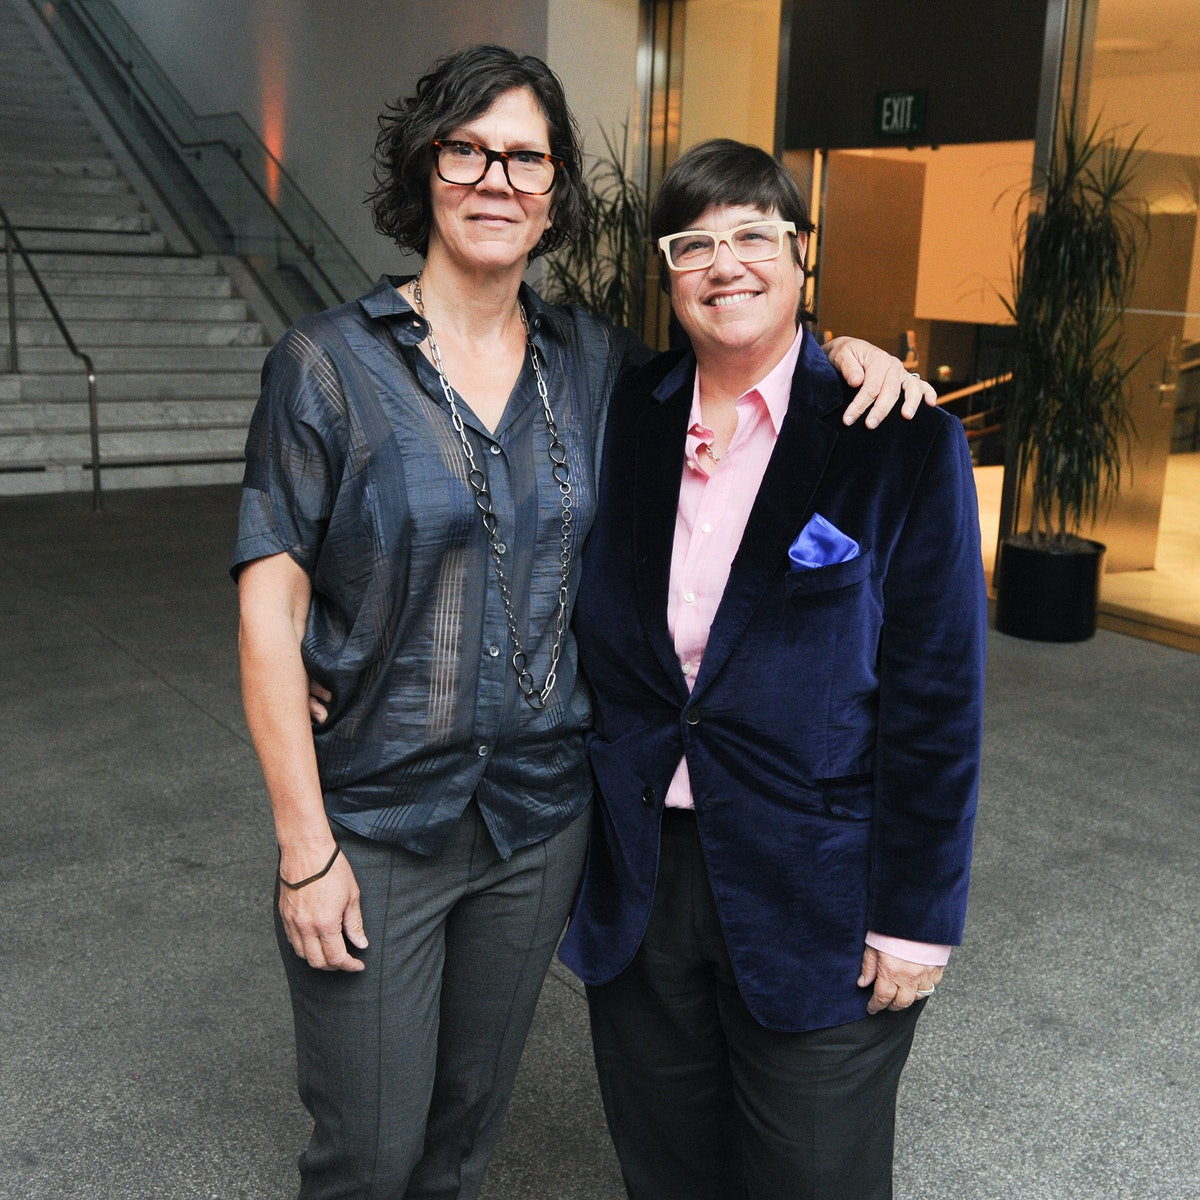 Julie Burleigh and Catherine Opie